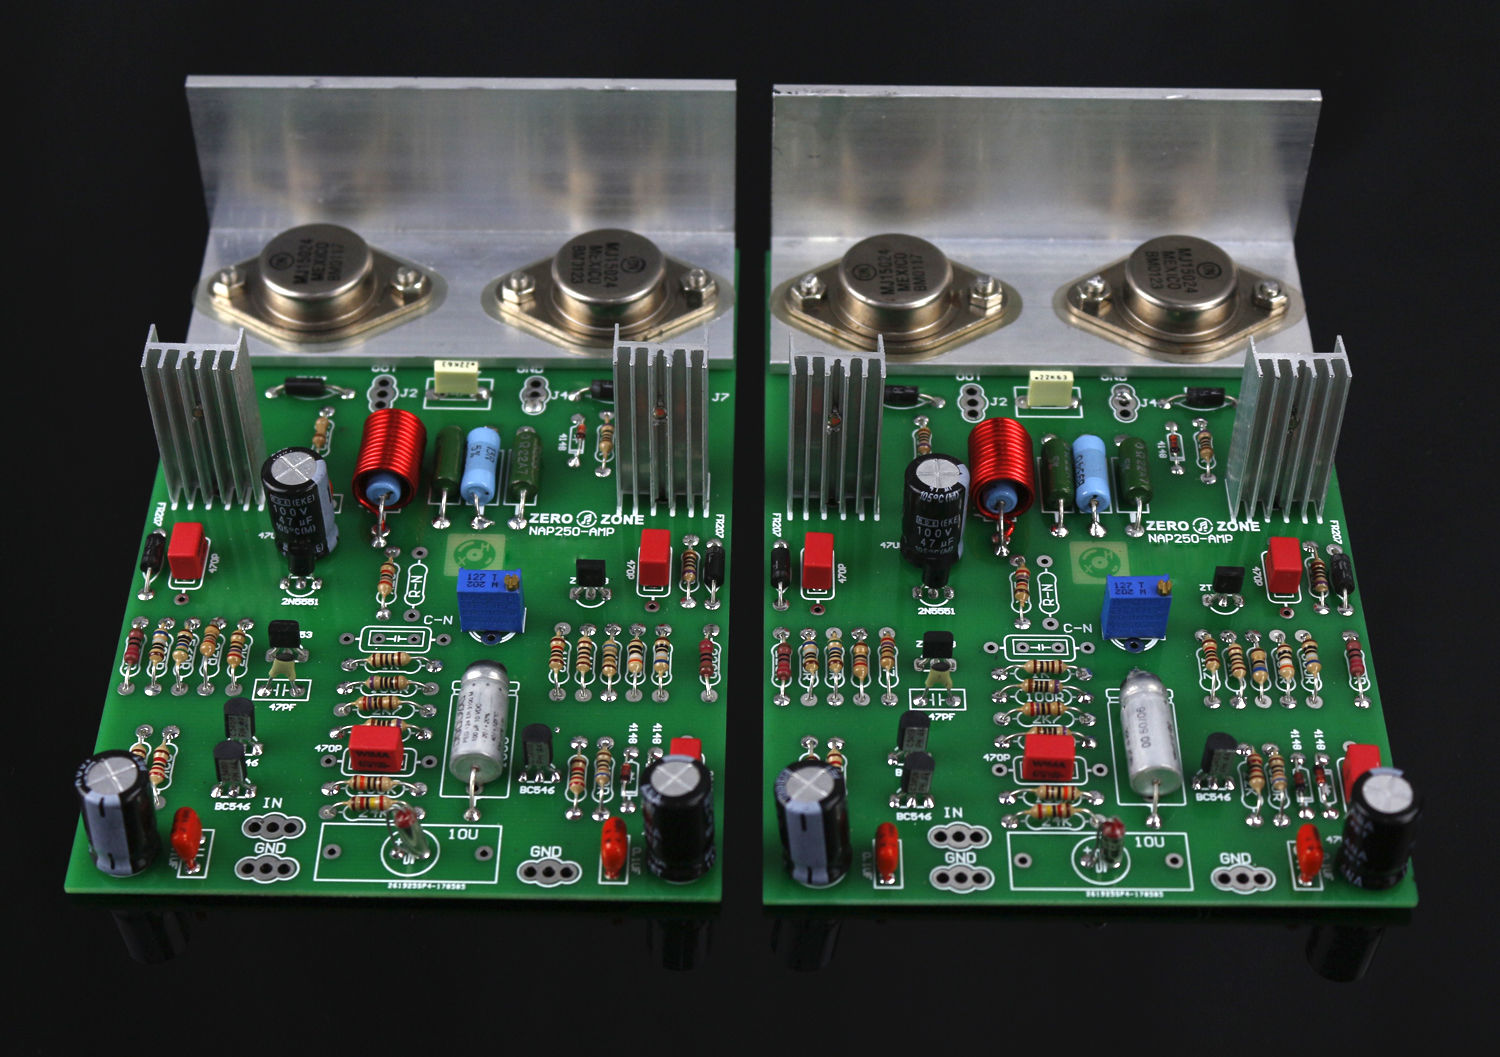 GZLOZONE One Pair Assembeld NCC200 Power Amplifier Board Base On UK NAIM NAP250 / 135 Amp gzlozone one pair assembeld lm3886 amp board base on jeff rowland amp 360w 360w l11 4